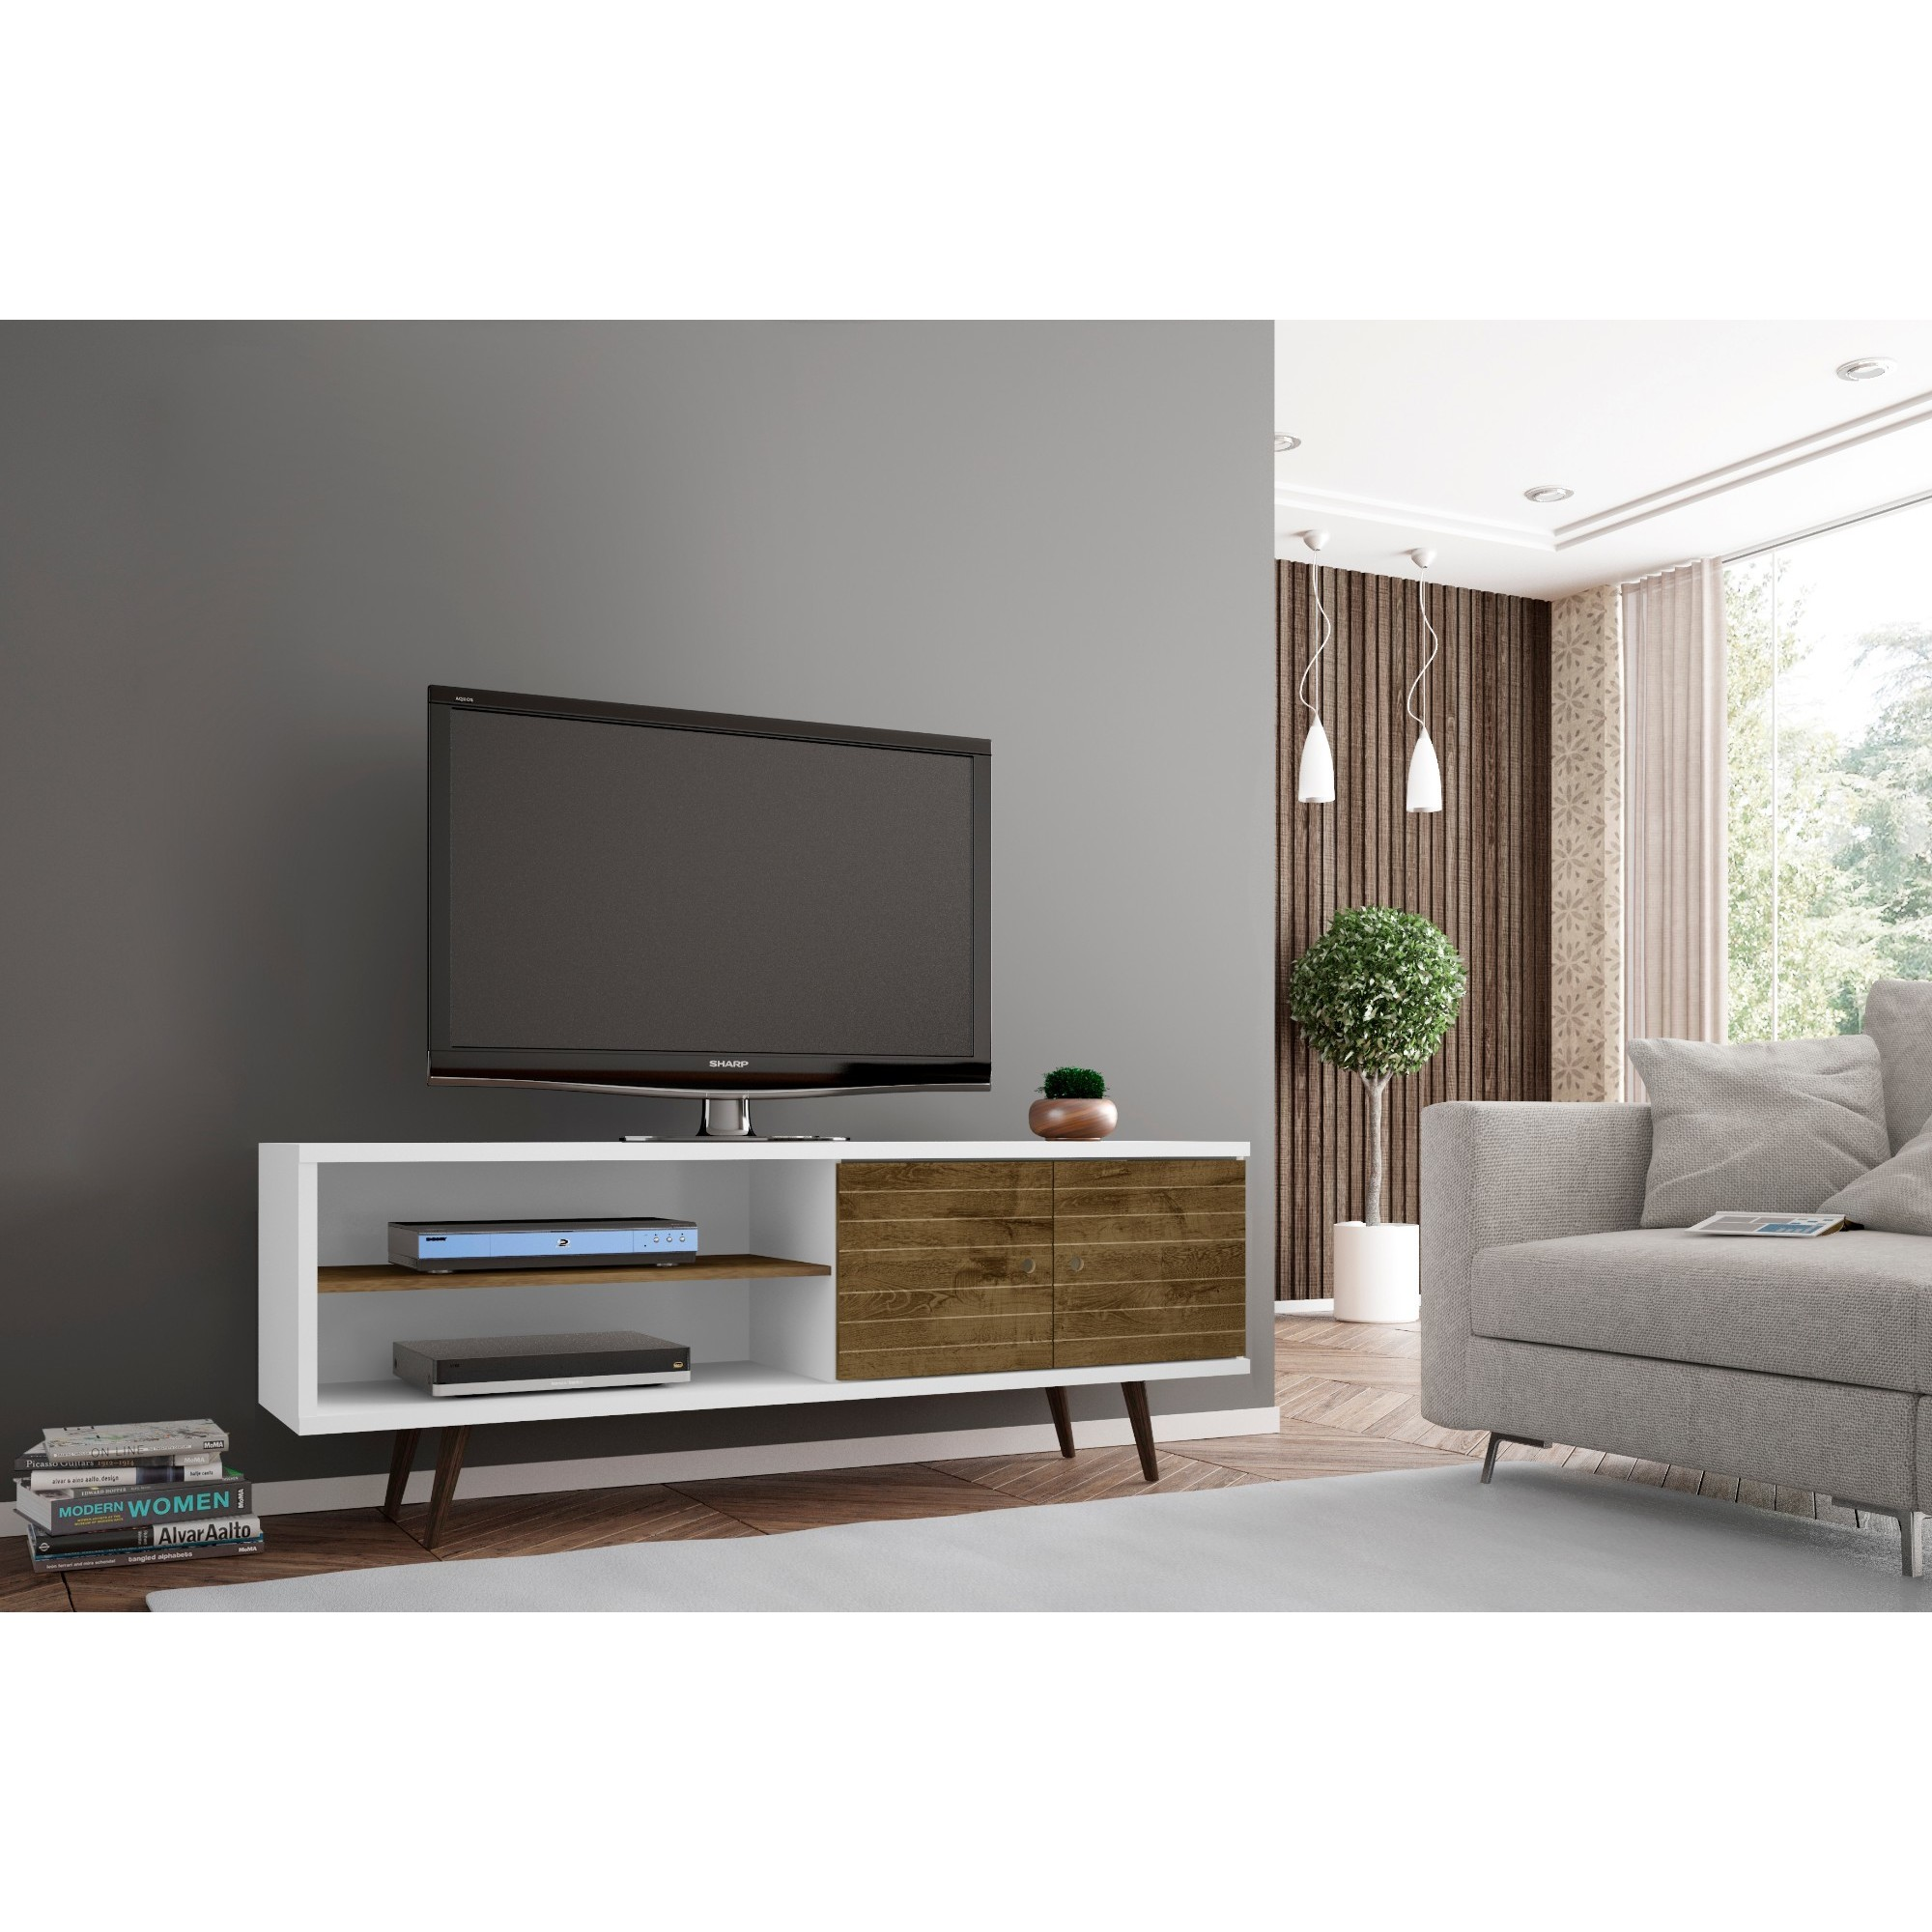 Shop carson carrington sortland wooden modern tv stand on sale free shipping today overstock com 22751405